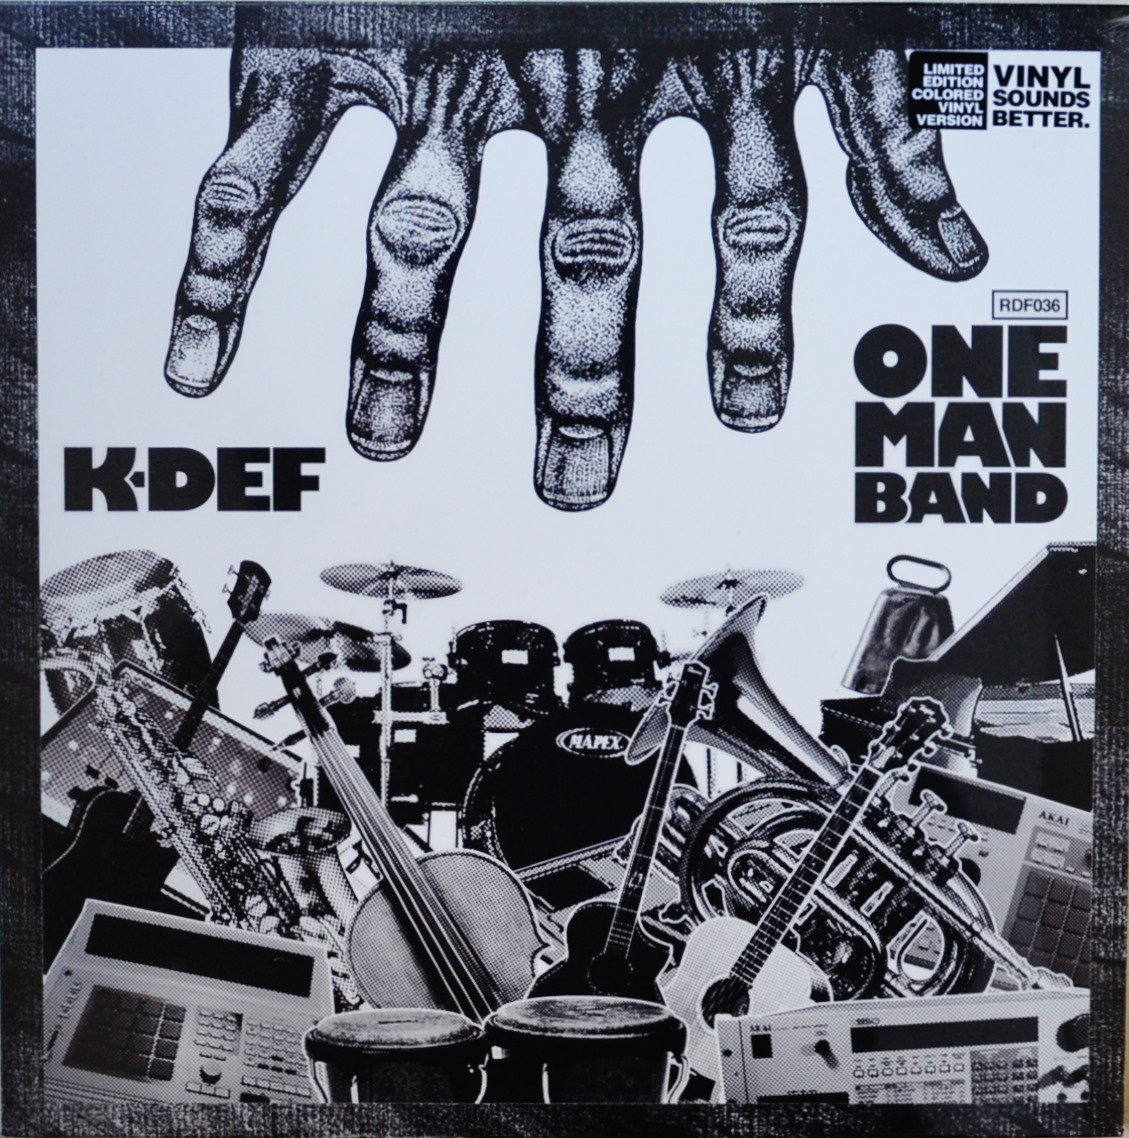 K-DEF / ONE MAN BAND (LIMITED TO 500 COPIES GREEN VINYL) (LP)